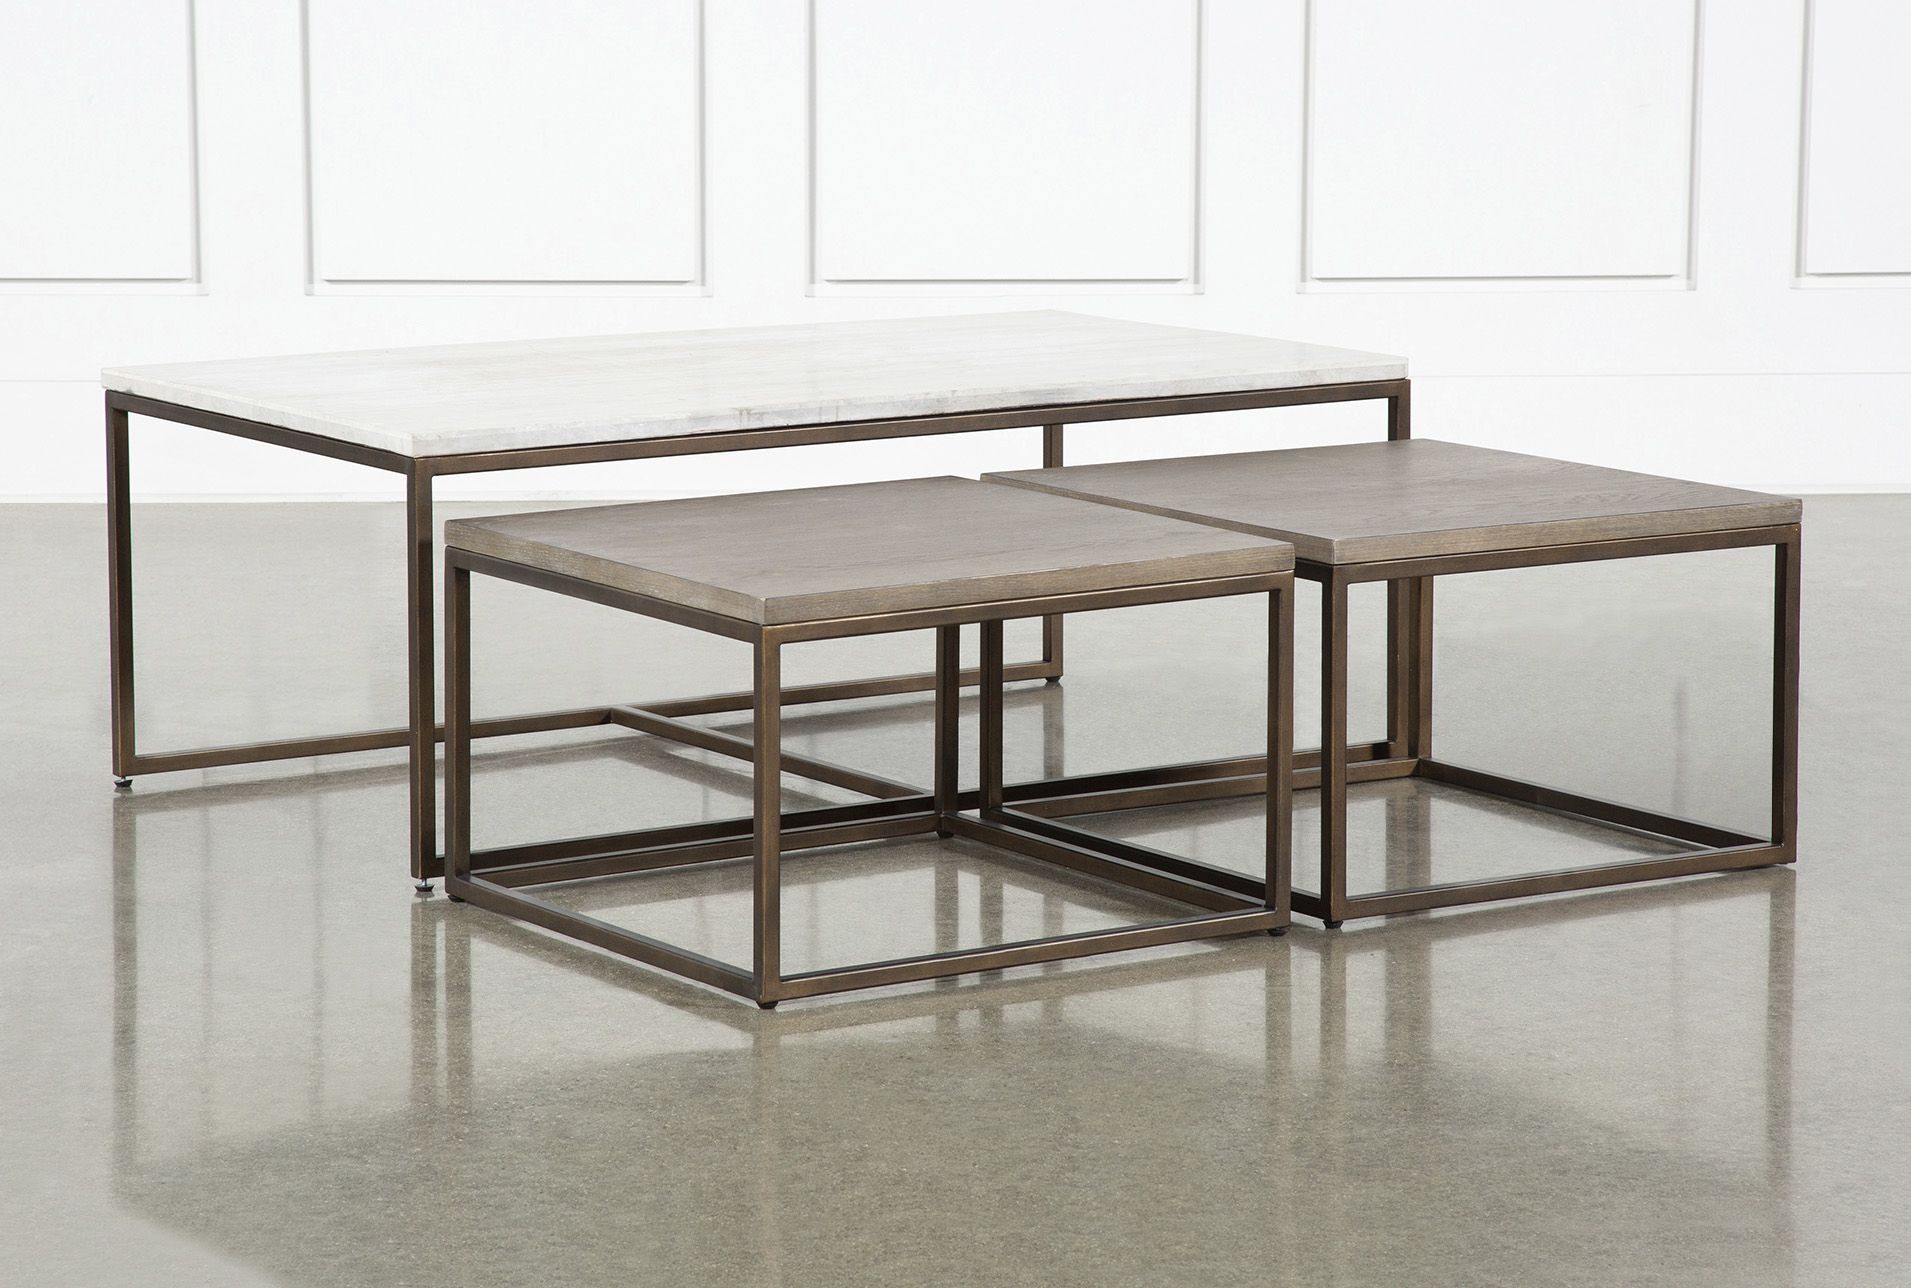 Pavilion Nesting Coffee Tables By Nate Berkus And Jeremiah Brent Coffee Table Nesting Coffee Tables Small Coffee Table [ 1288 x 1911 Pixel ]